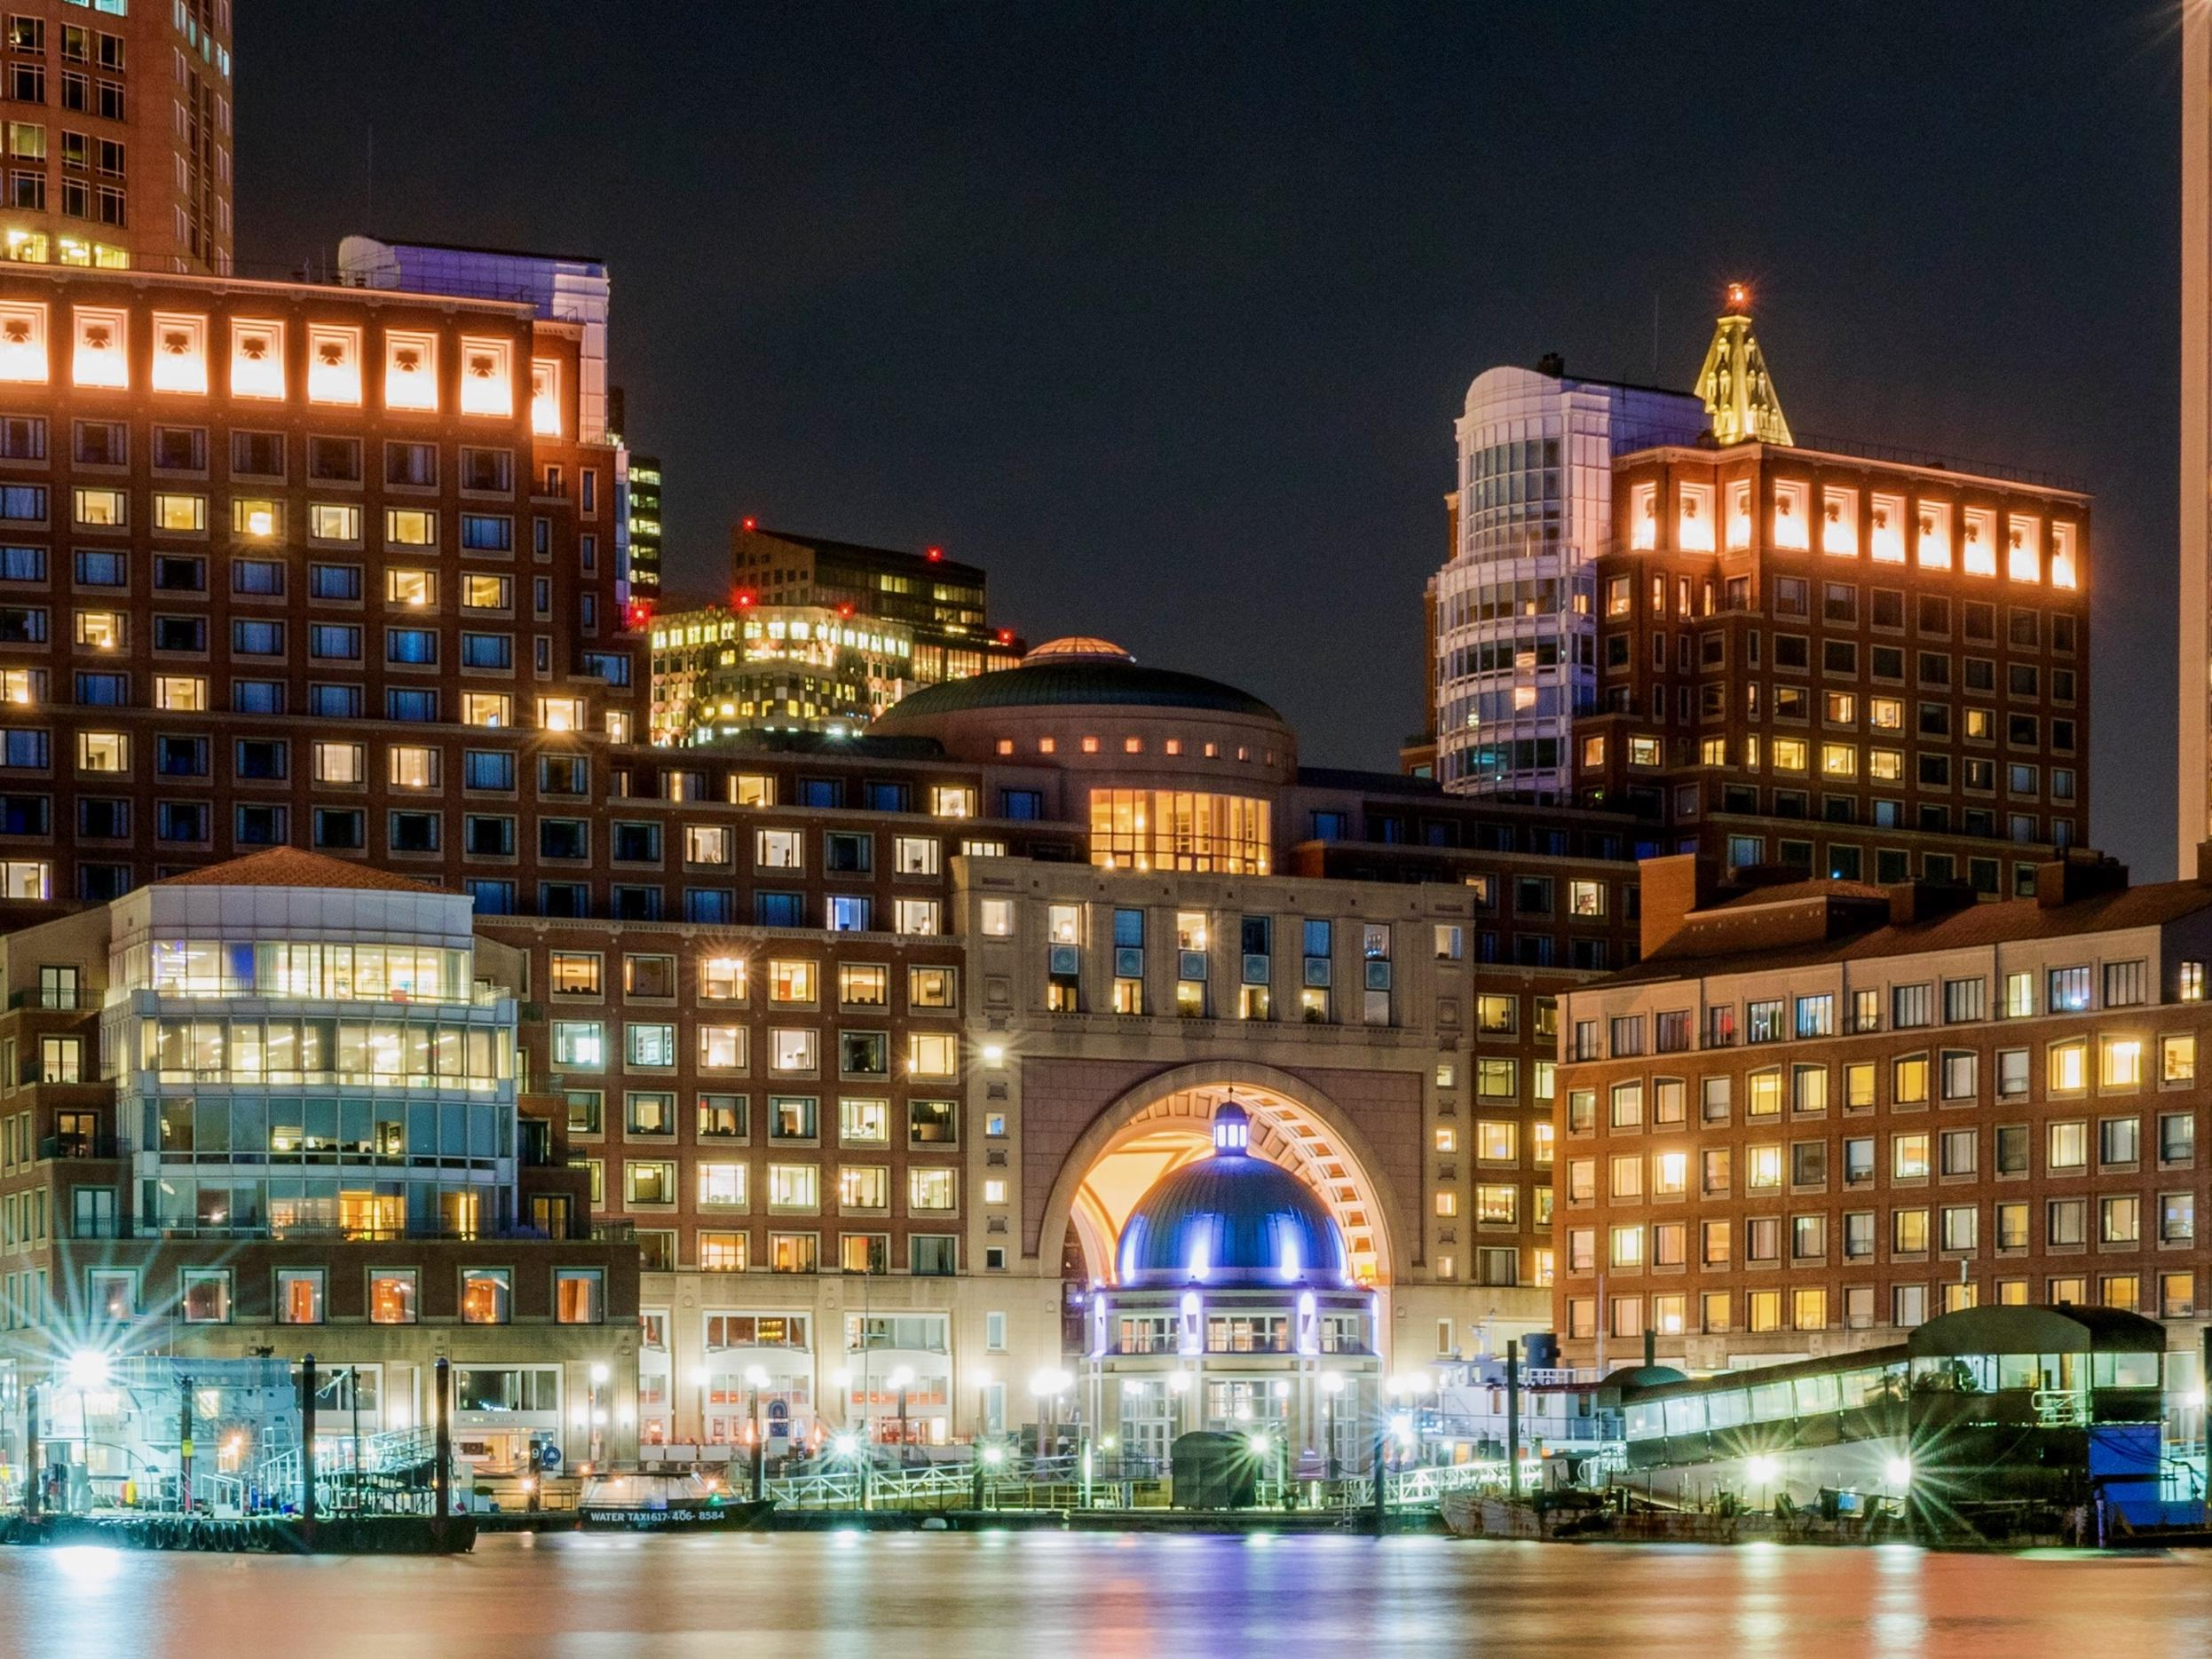 Boston Harbor Hotel exterior at night